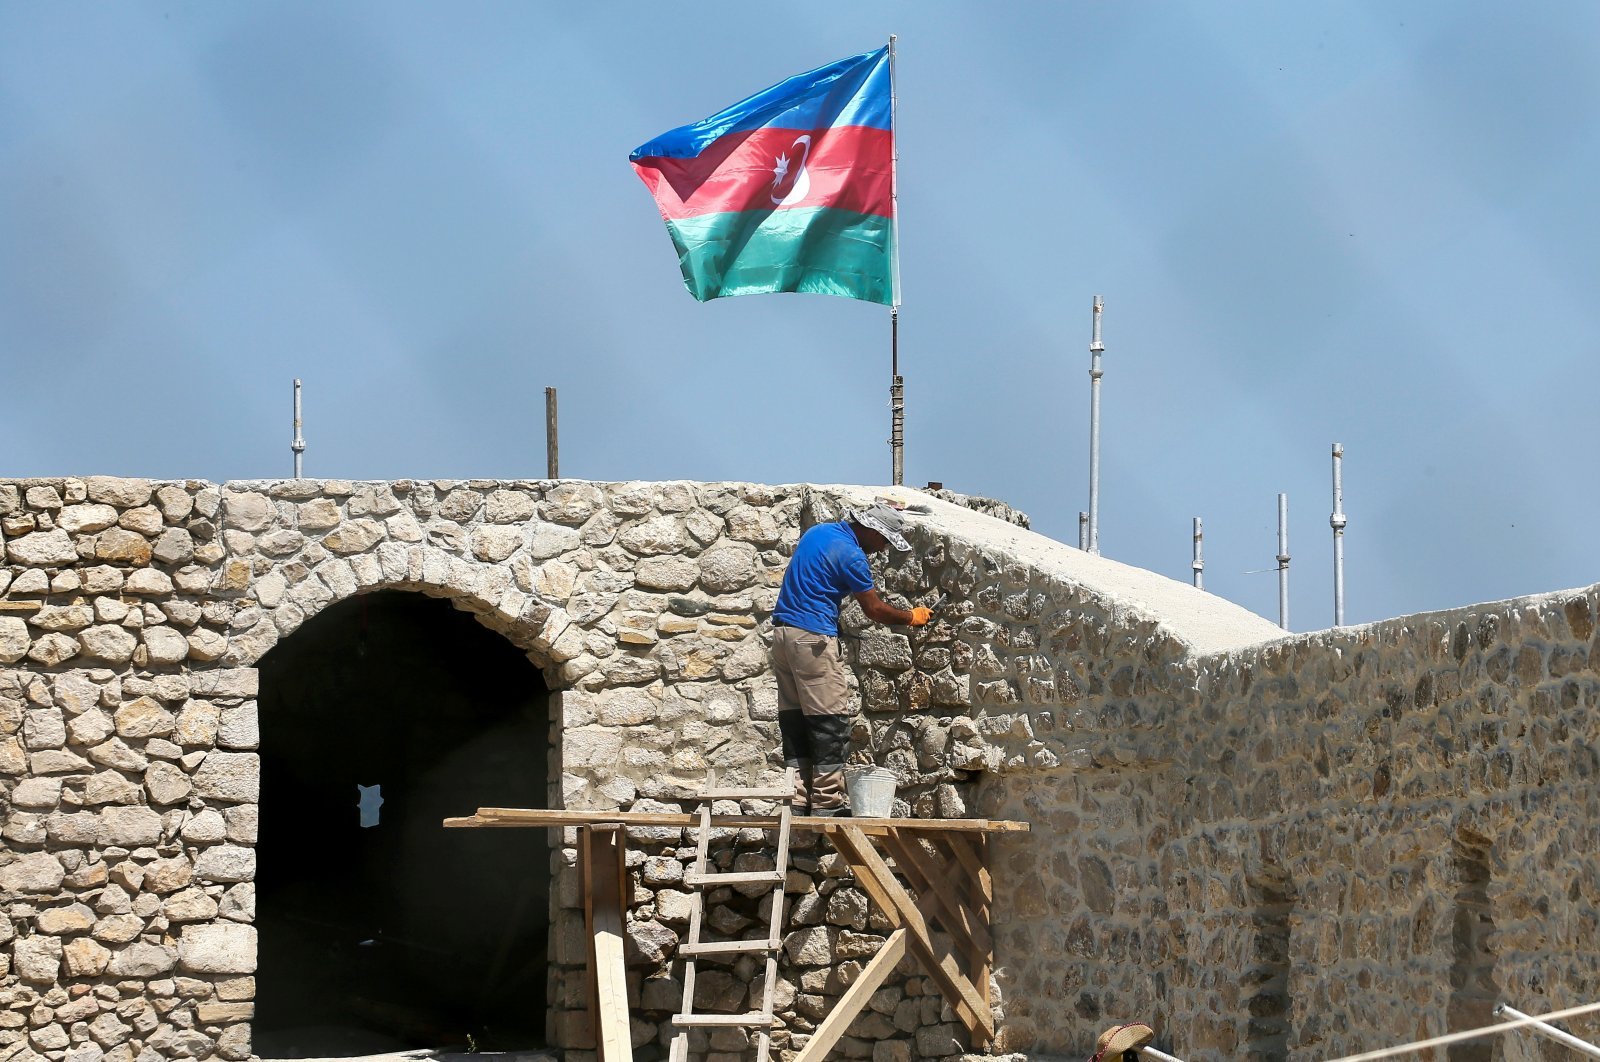 The Shusha Fortress under restoration. Large-scale construction and restoration of infrastructure facilities are underway at the territories of Nagorno-Karabakh that passed over to Azerbaijan after 30 years of Armenian occupation, July 4, 2021. (Photo by Gavriil GrigorovTASS via Getty Images)